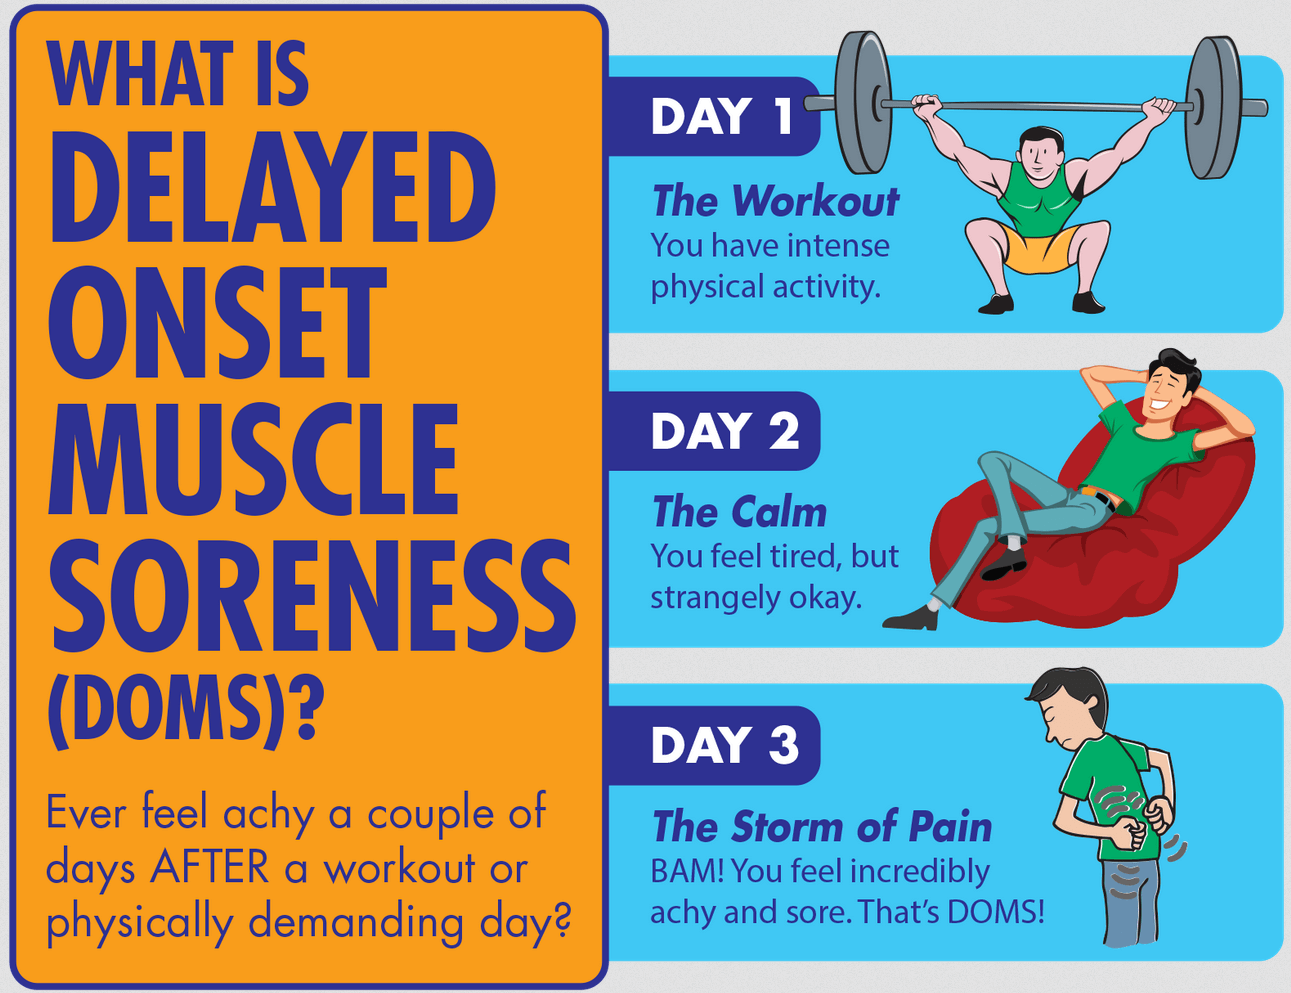 Muscles-Soreness-(DOMS)